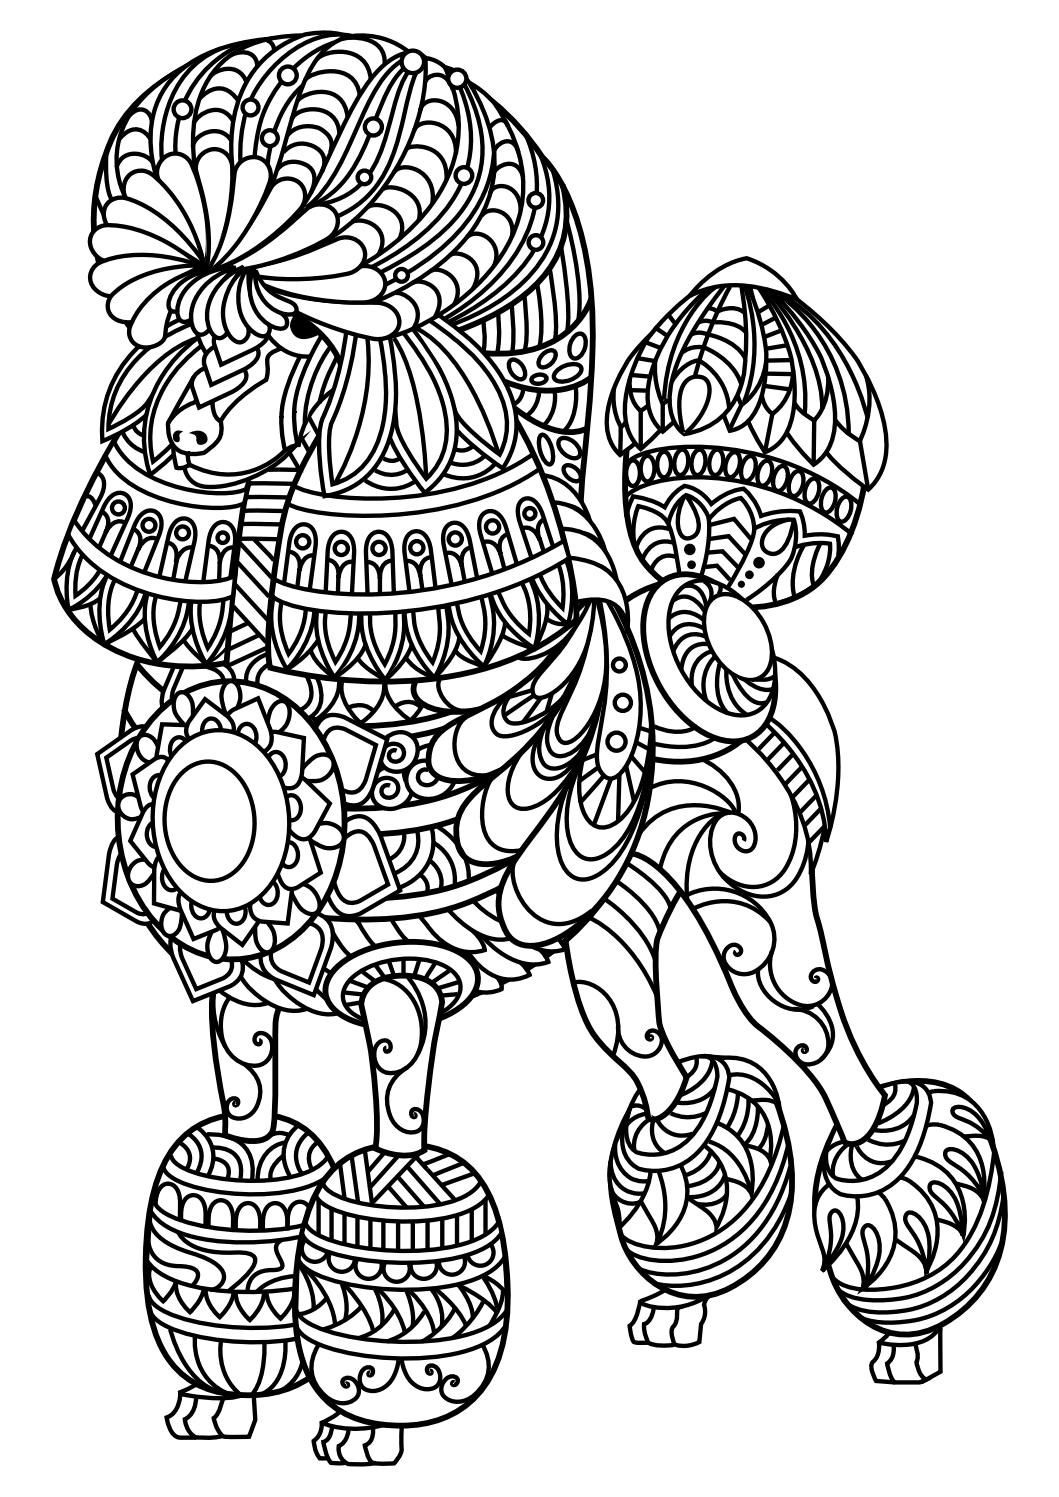 Animal coloring pages pdf Mandala coloring pages, Dog